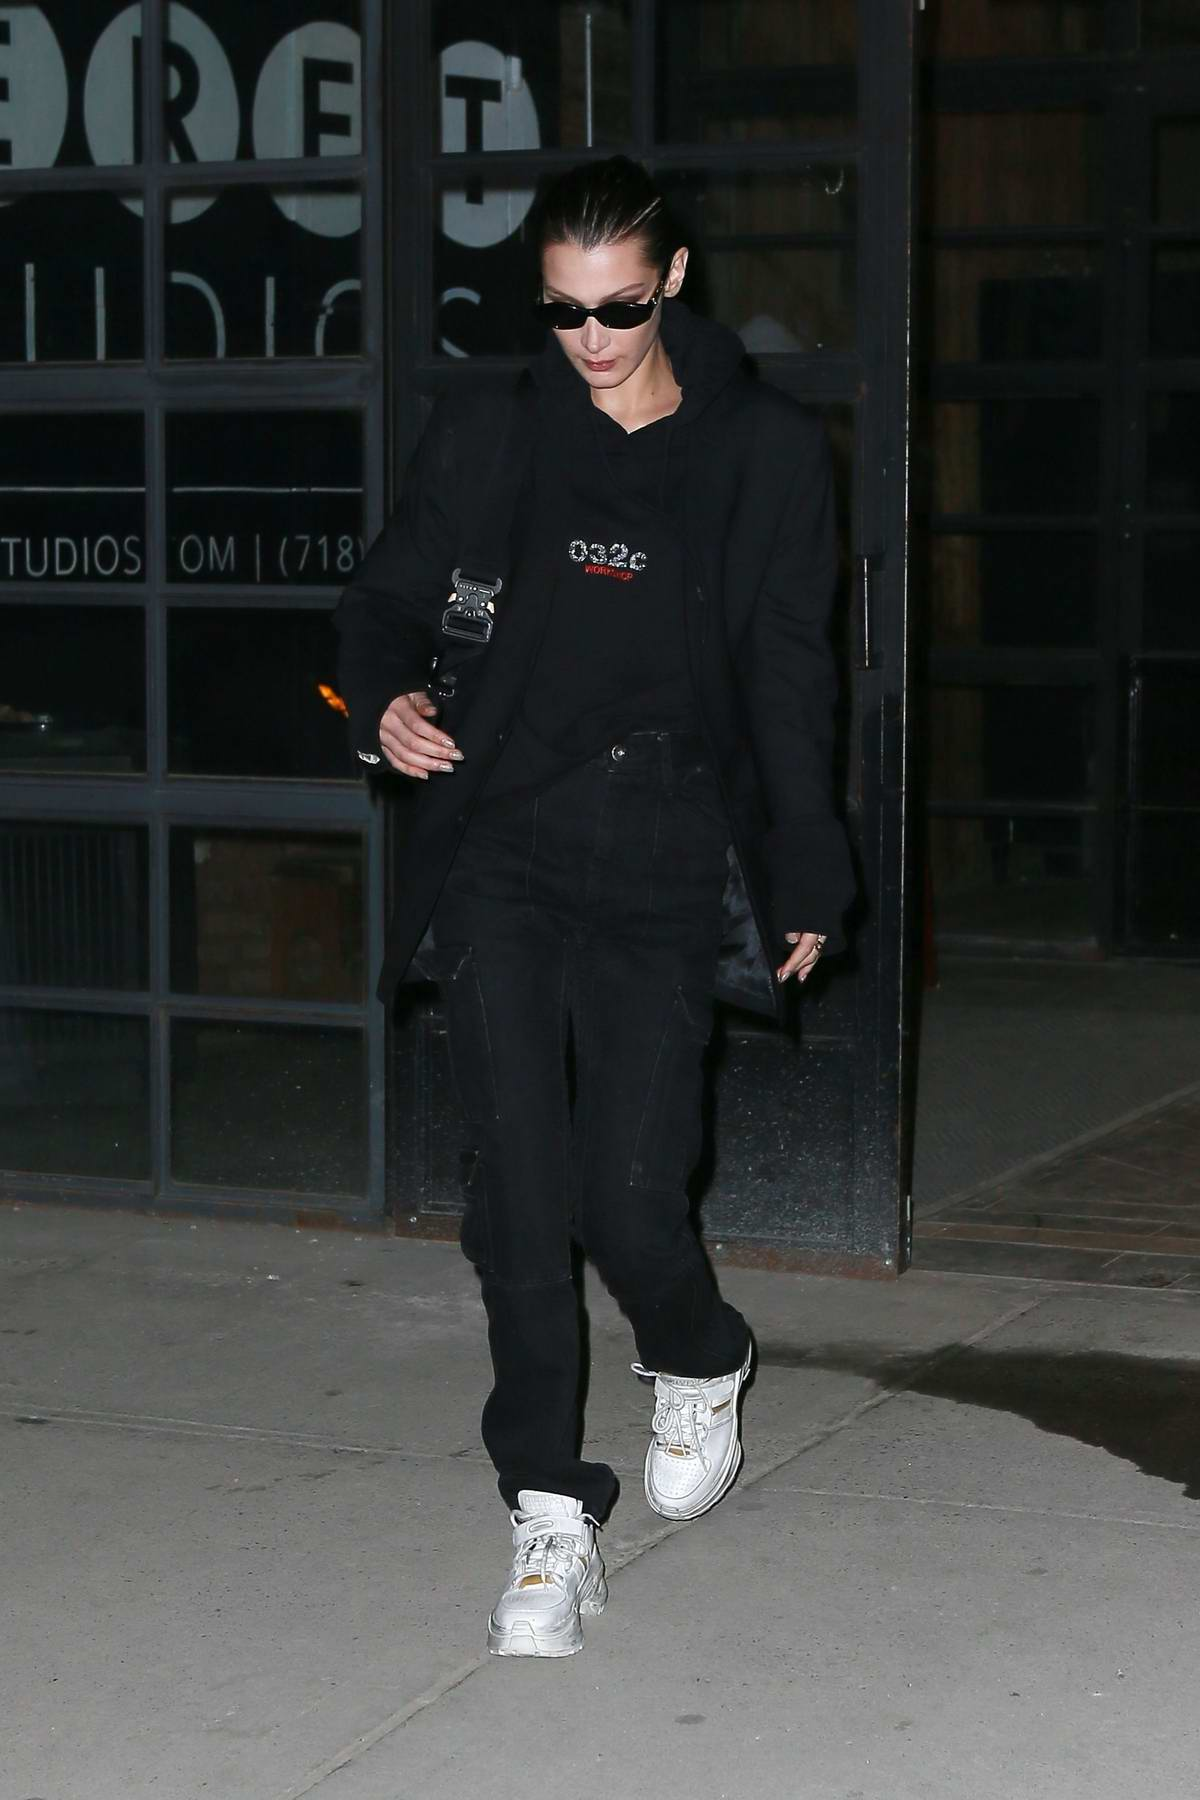 Bella Hadid dons all black as she stops by Seret Studios in Brooklyn, New York City